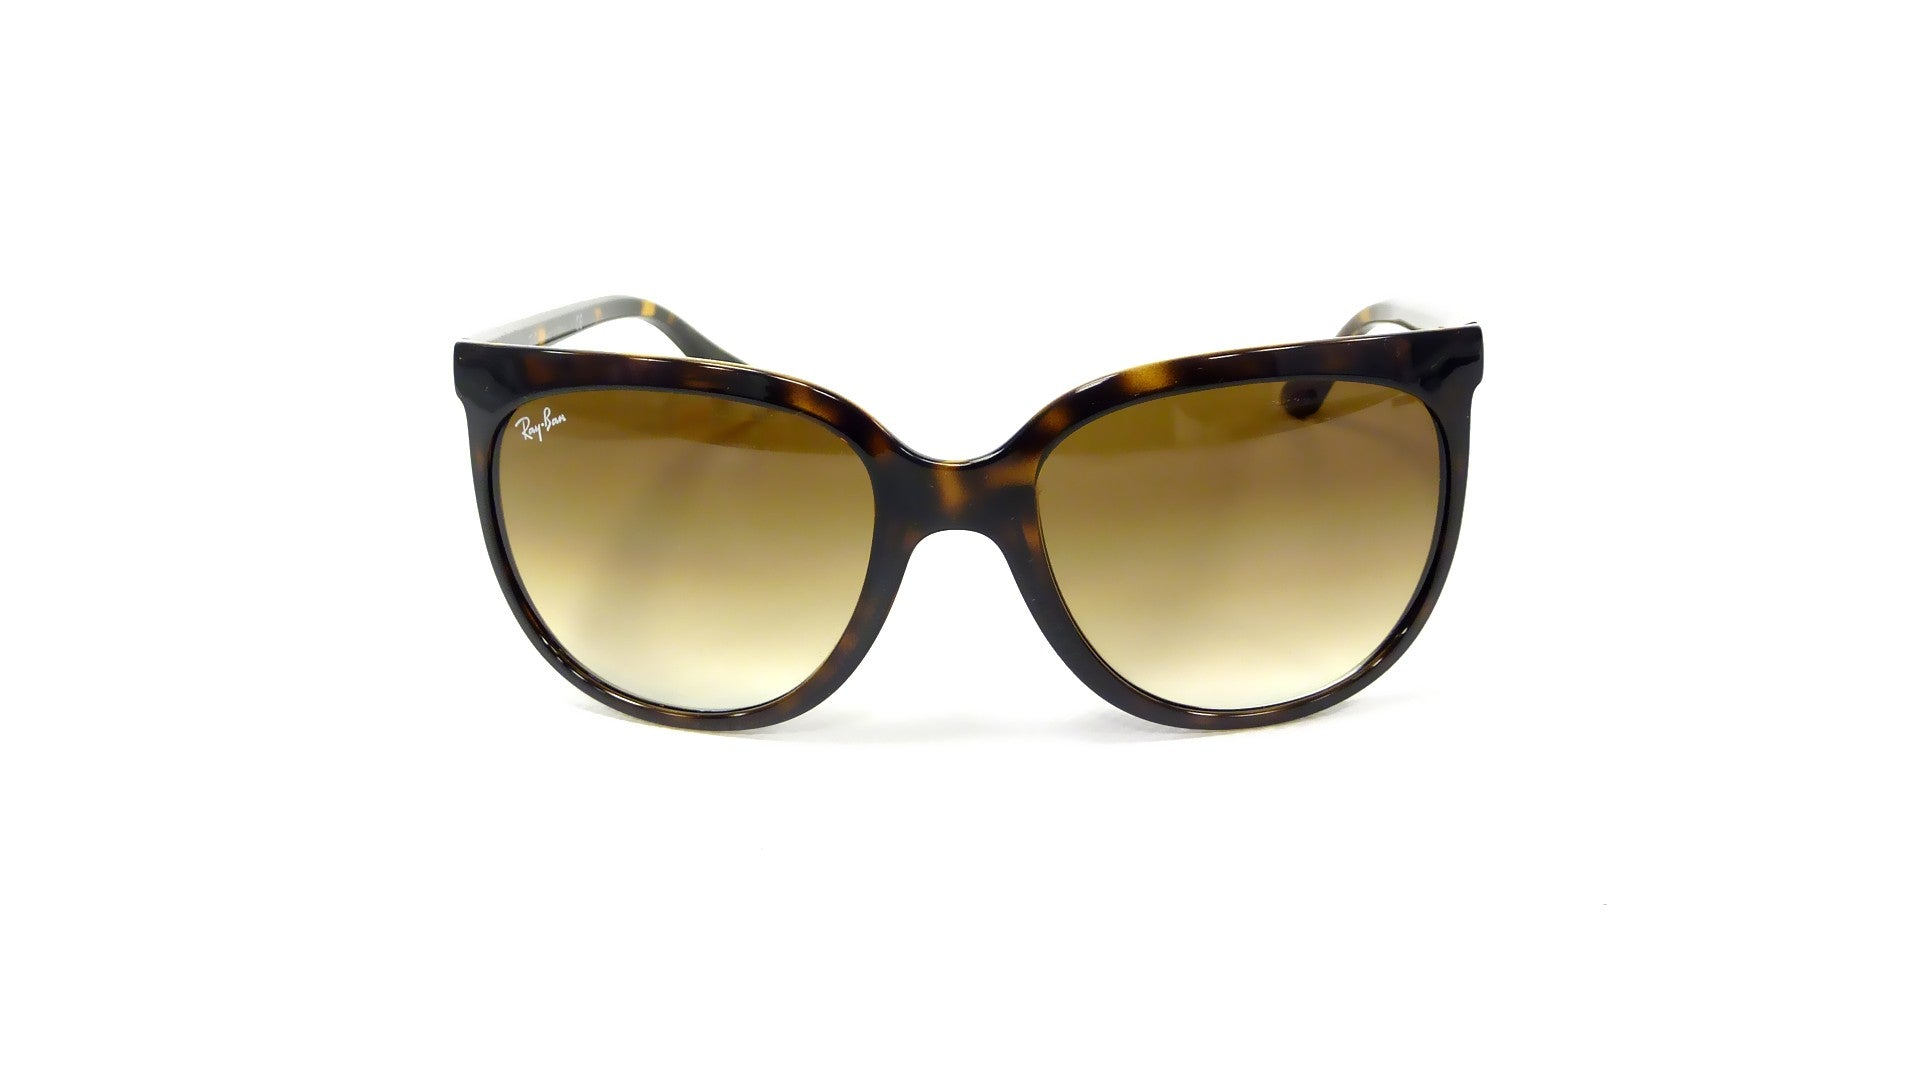 Ray Ban Sunglasses Cats 1000 RB4126 710/A6